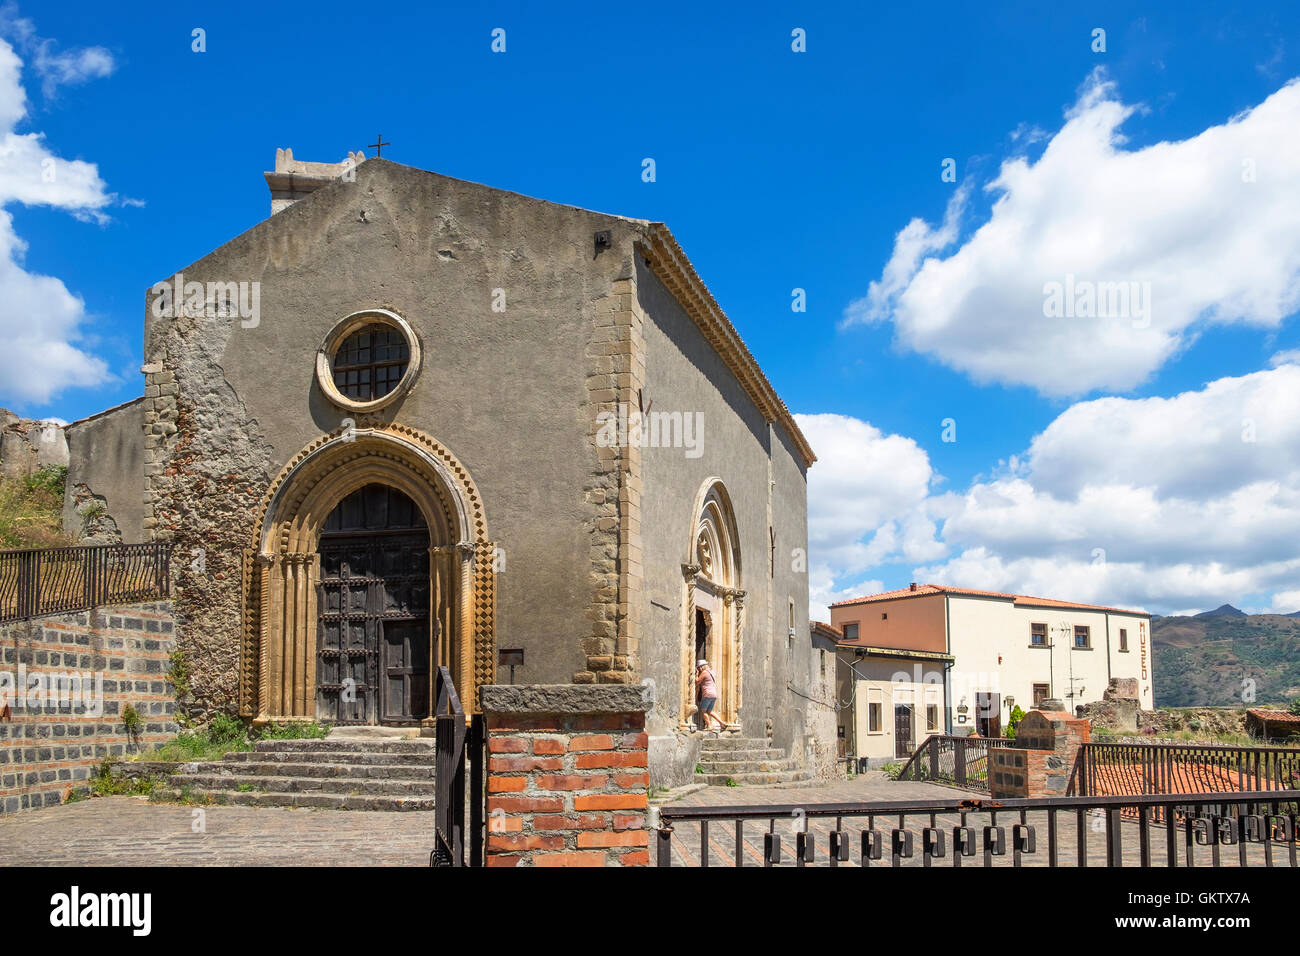 San Michele church in the mountain village of Savoca on the island of Sicily, Italy - Stock Image